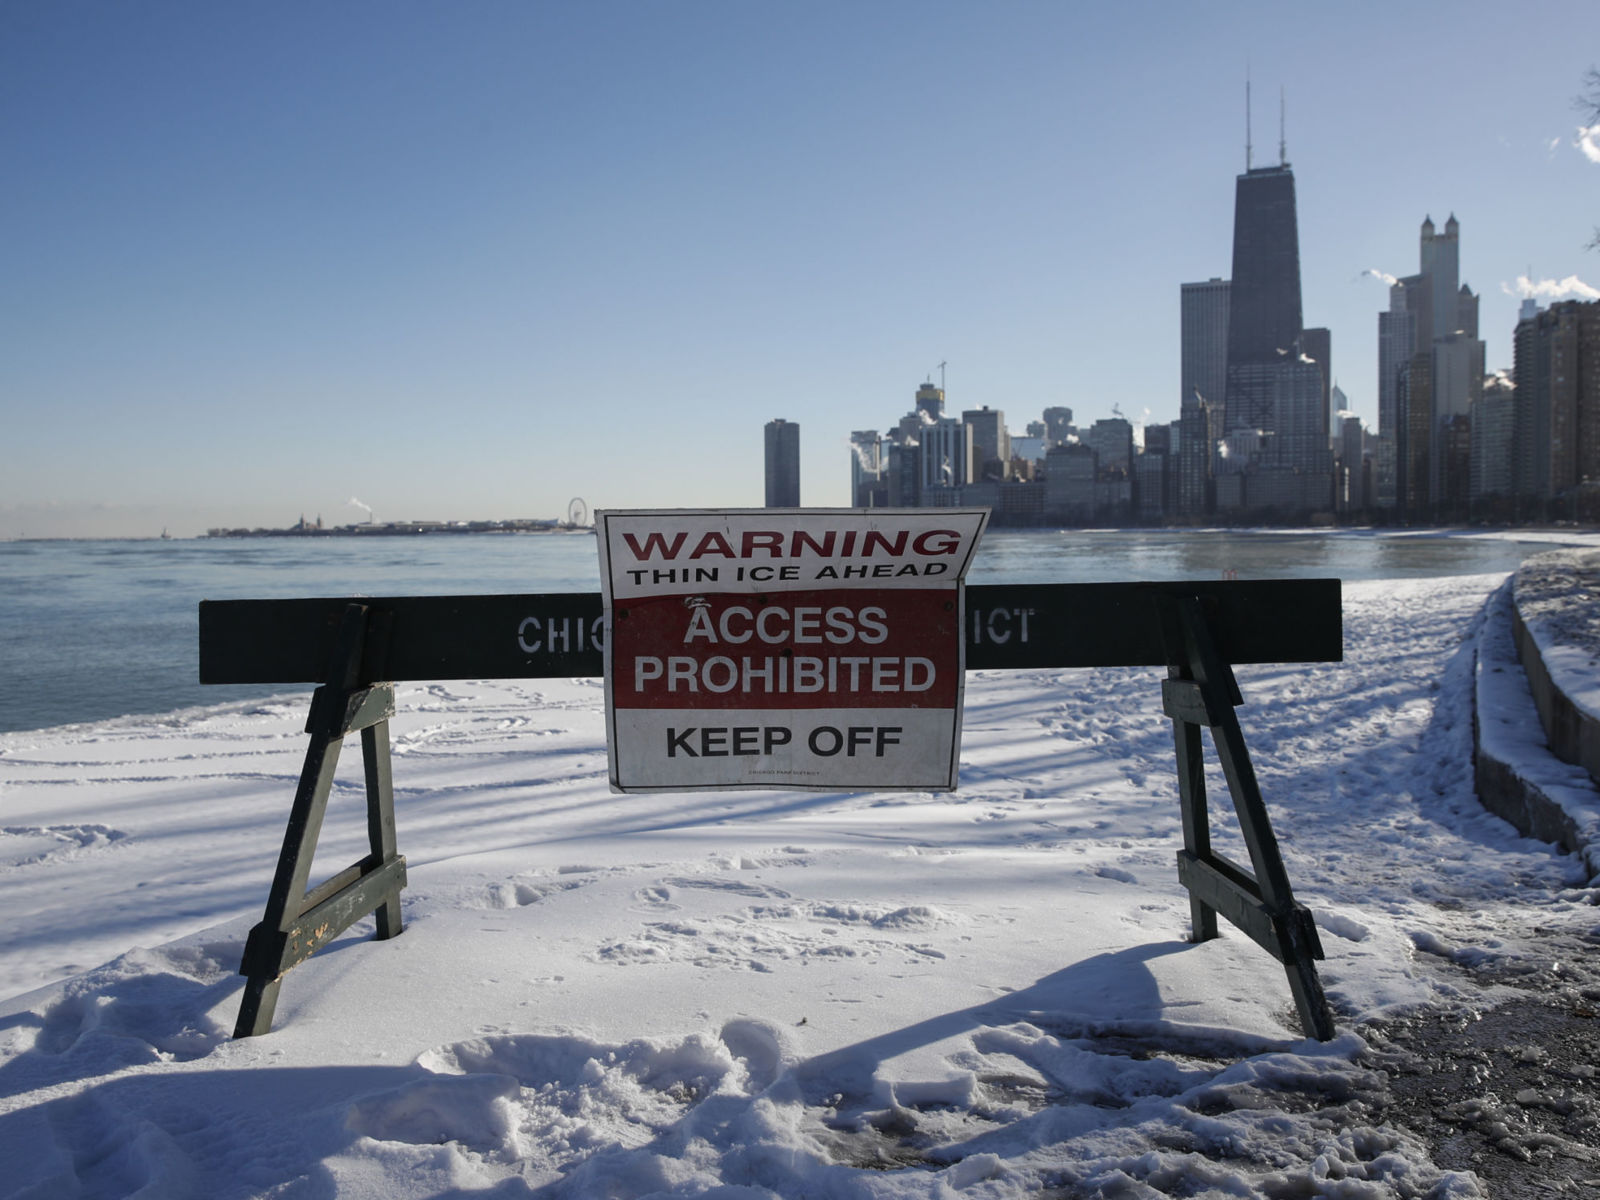 CHICAGO, IL - DECEMBER 27: A sign warns pedestrians along the lakefront on December 27, 2017 in Chicago, Illinois. Frigid temperatures will be dipping into the single digits in the Midwest over the next few days.  (Photo by Kamil Krzaczynski/Getty Images)